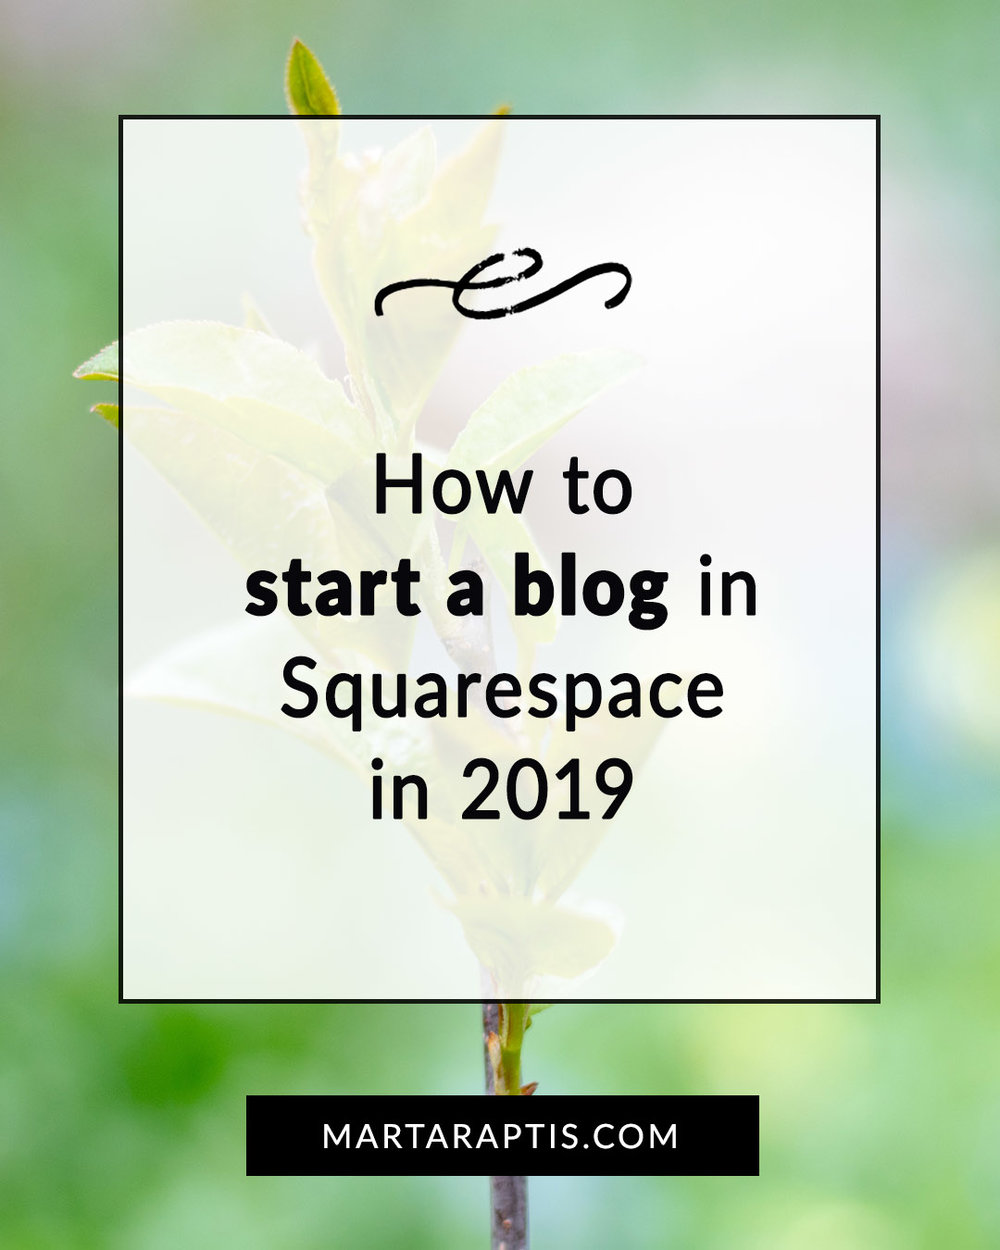 how to start a blog in squarespace